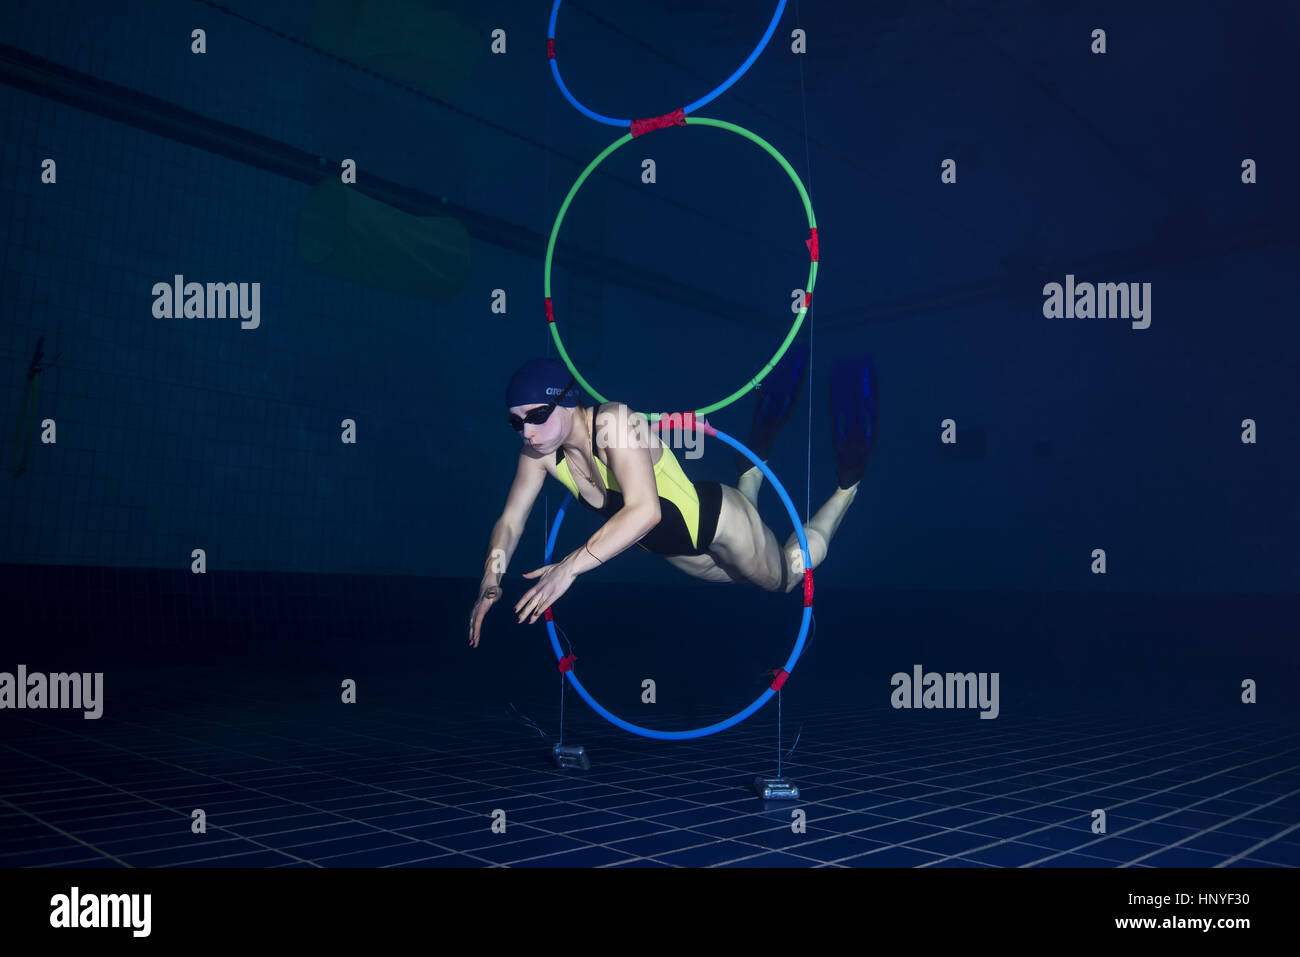 Underwater relay race, Nikolaev, Ukraine - Stock Image